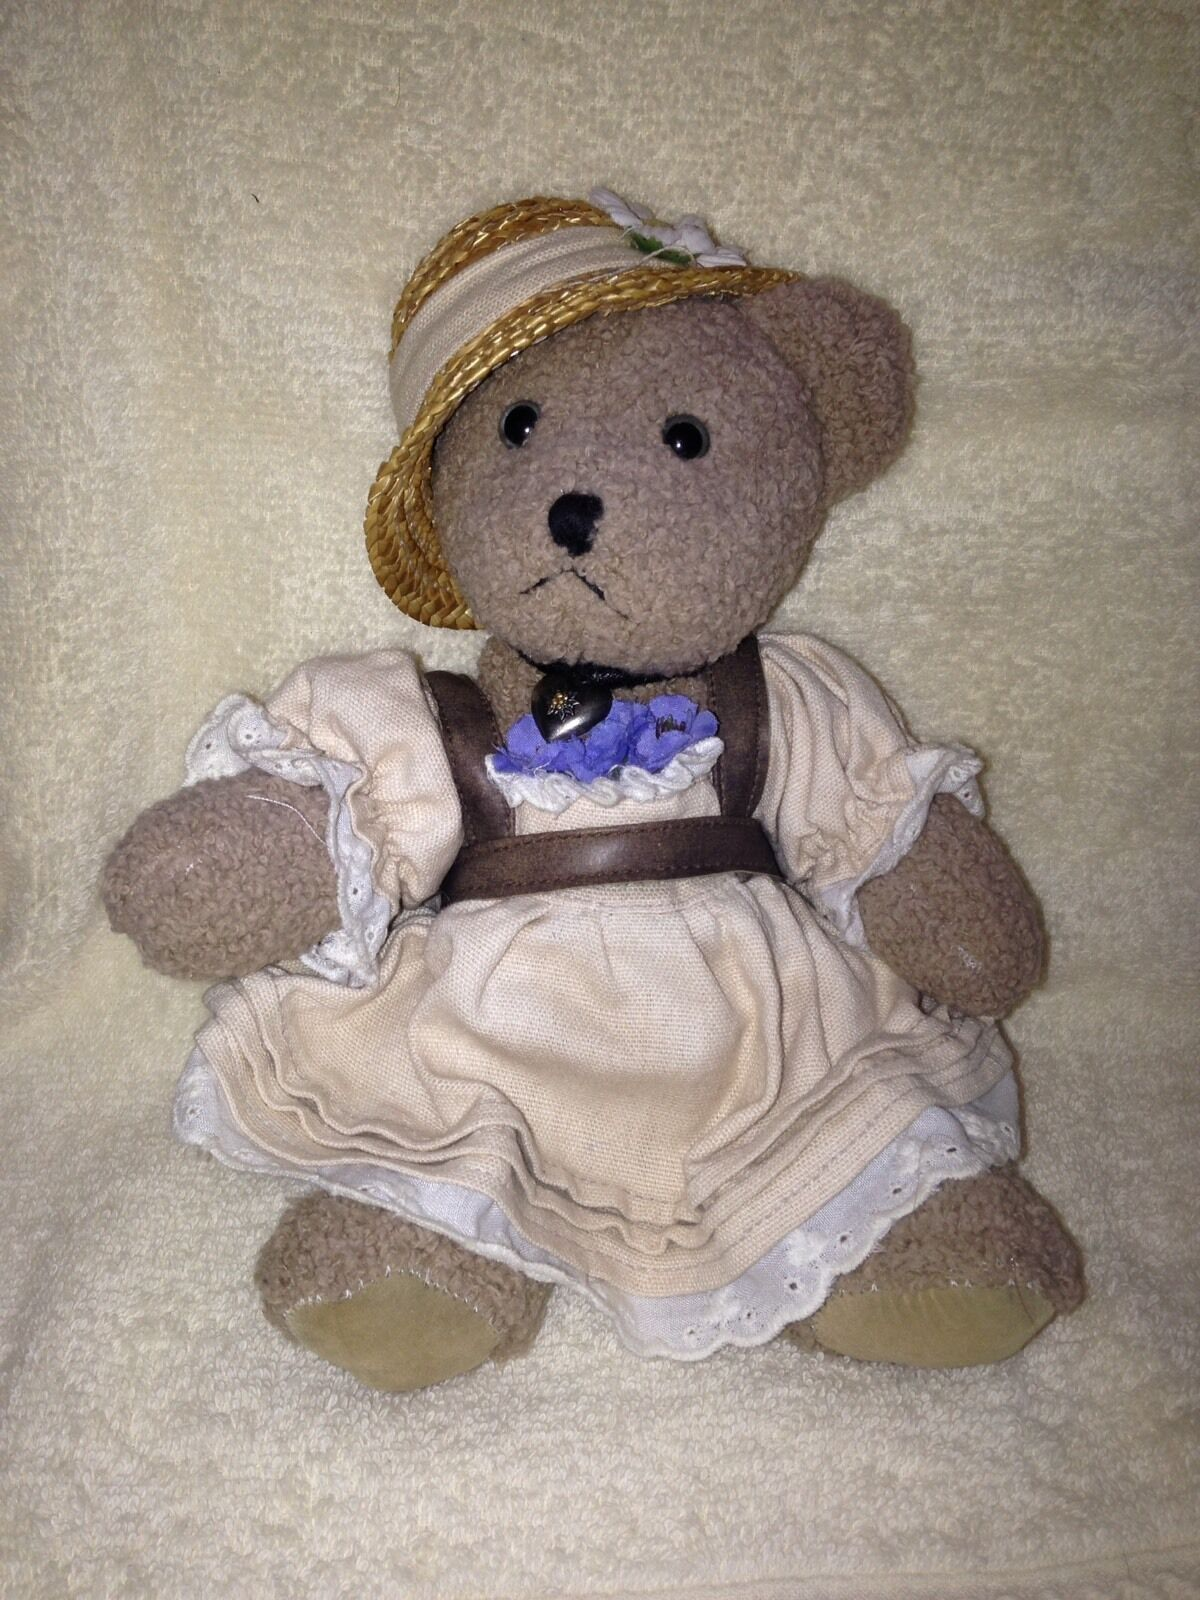 G Wurm KG-KOLN Germany Made Teddy Bear W Hat,Dress & Heart Necklace-Hard To Find